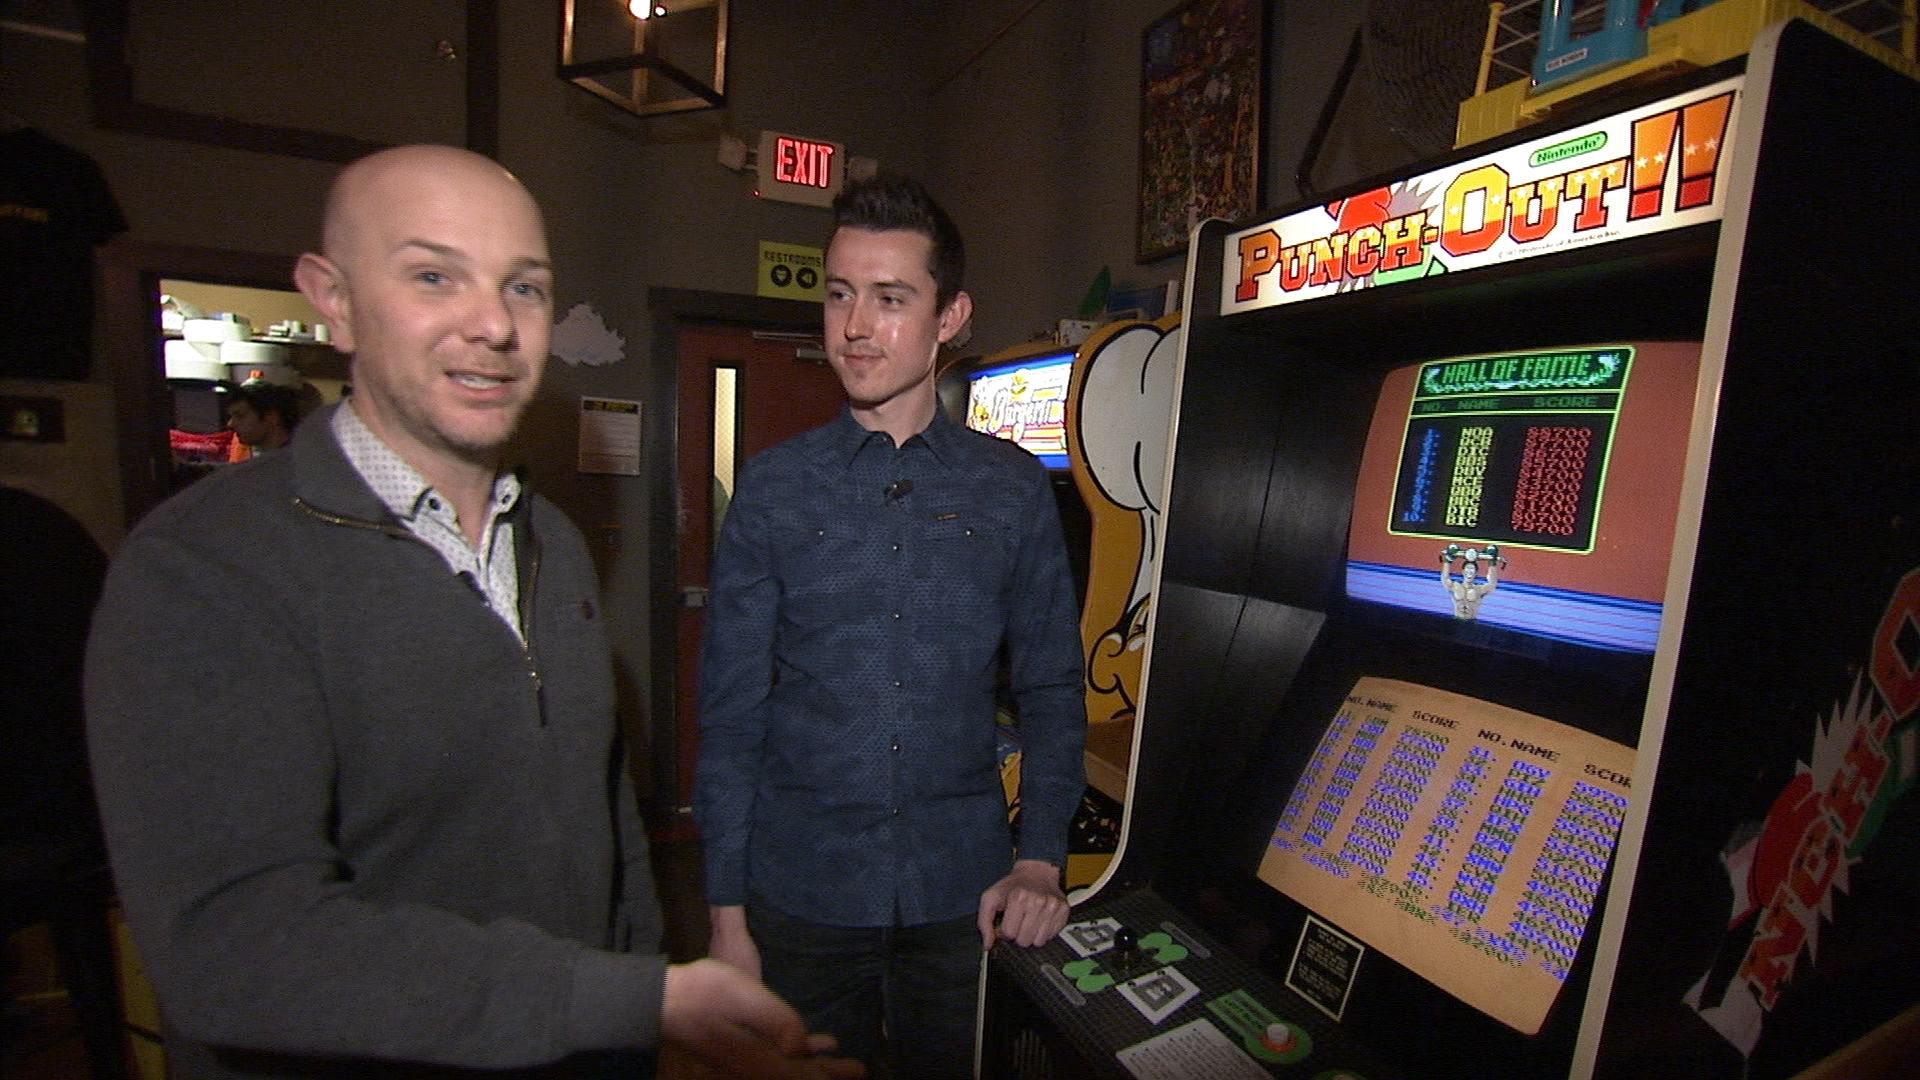 Monte Belmonte takes us on a trip down memory lane at The Quarters in Hadley, MA – a retro video arcade experience – and he's bringing a pocketful of change with him.